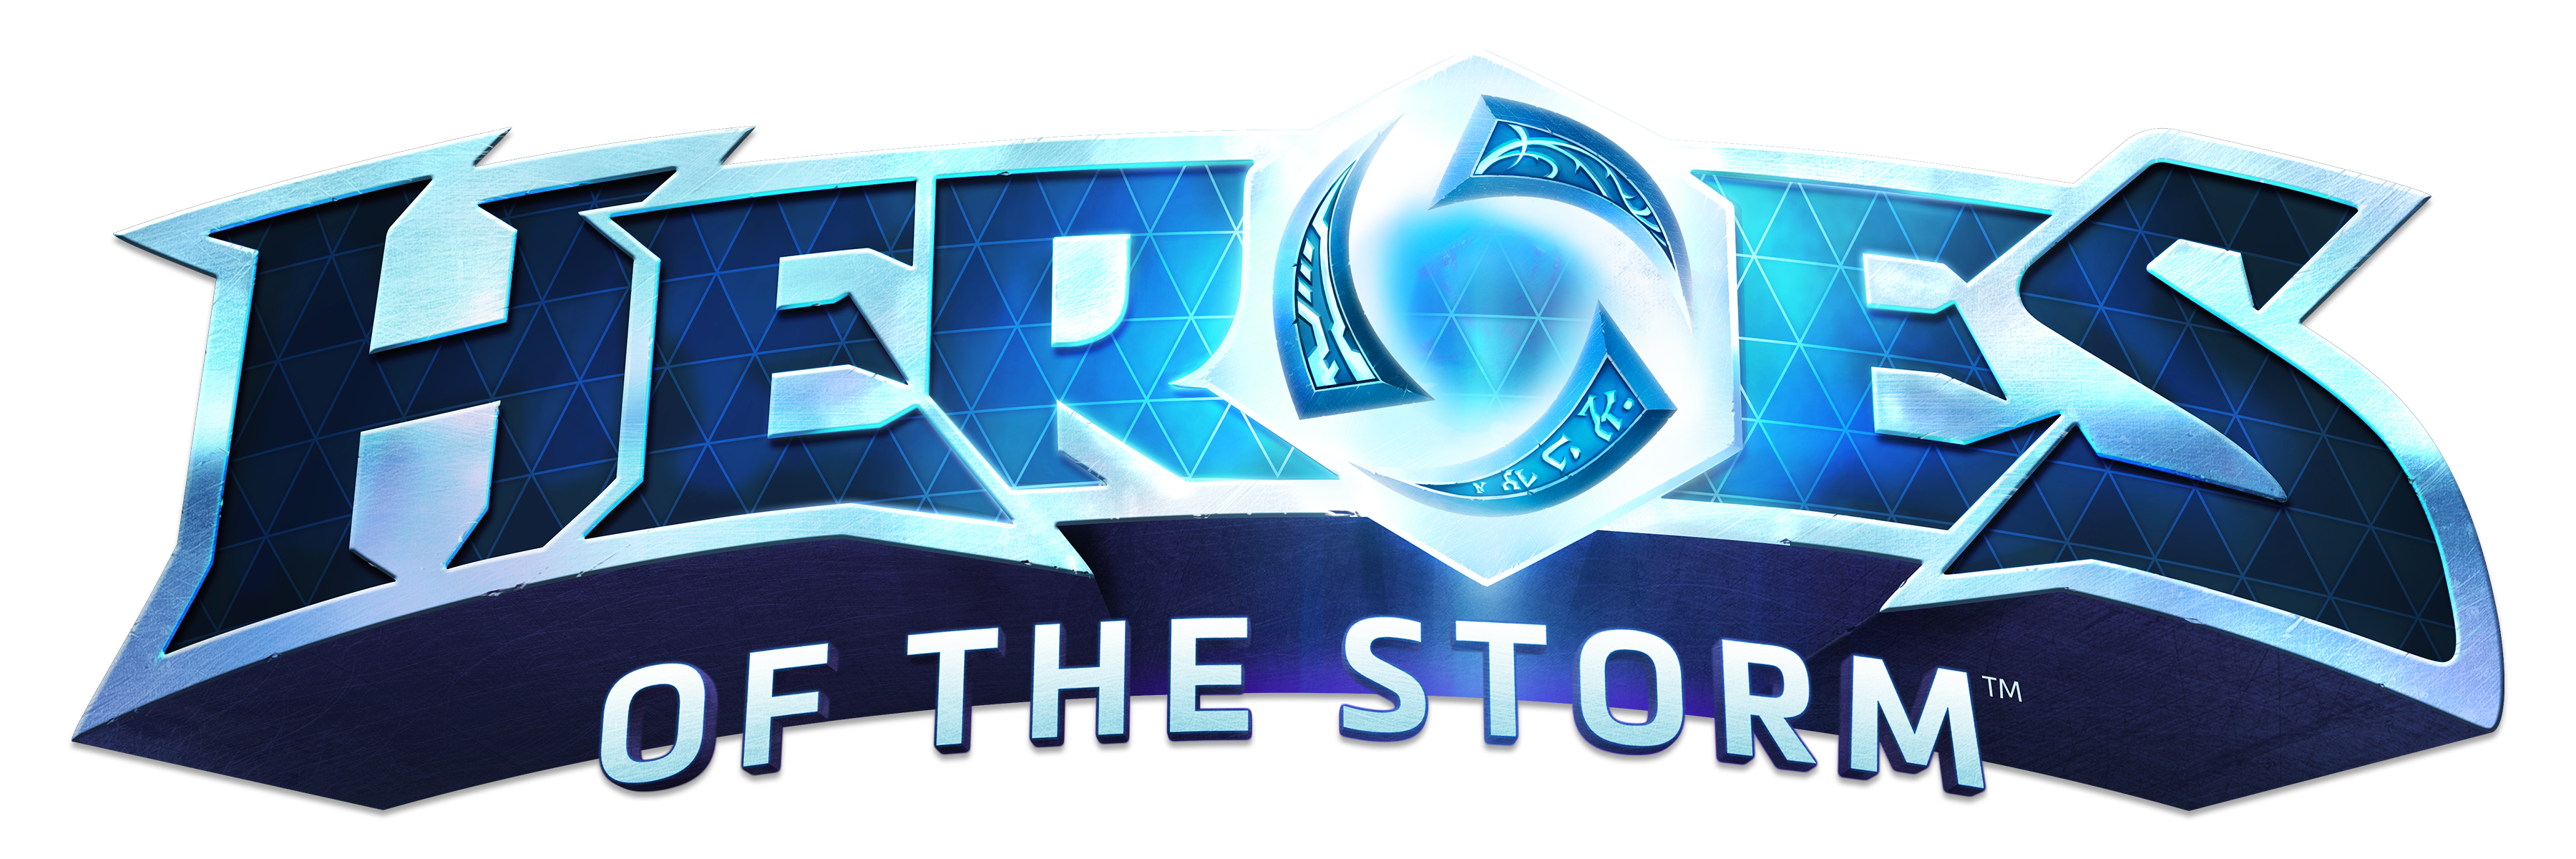 heroes of the storm details